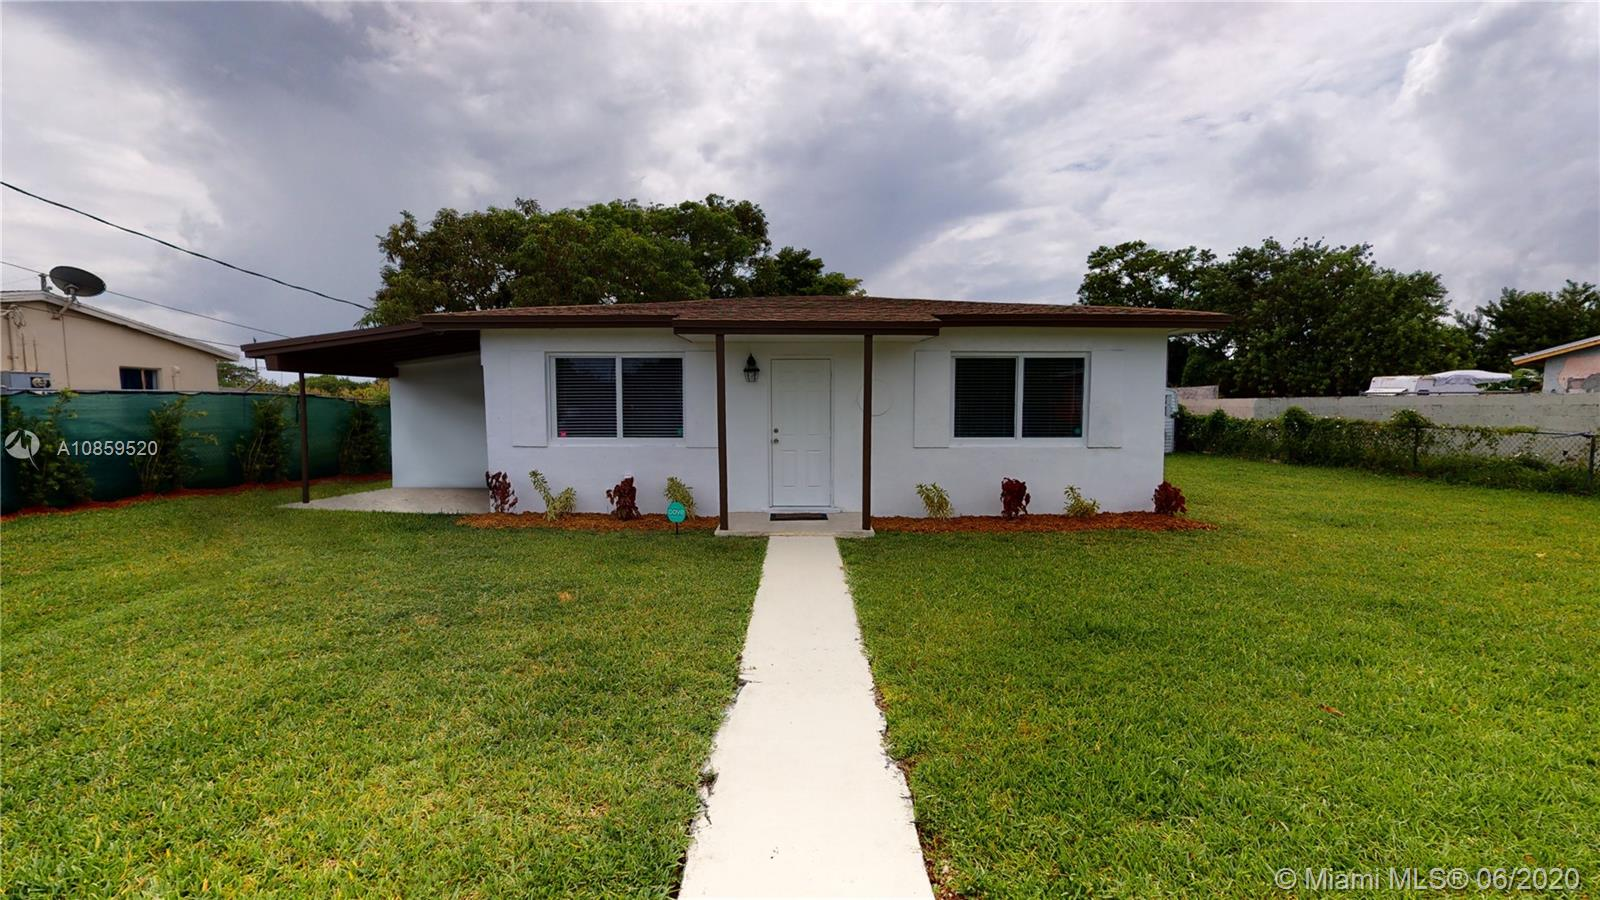 26520 SW 138th Ct, Naranja, FL 33032 - Naranja, FL real estate listing